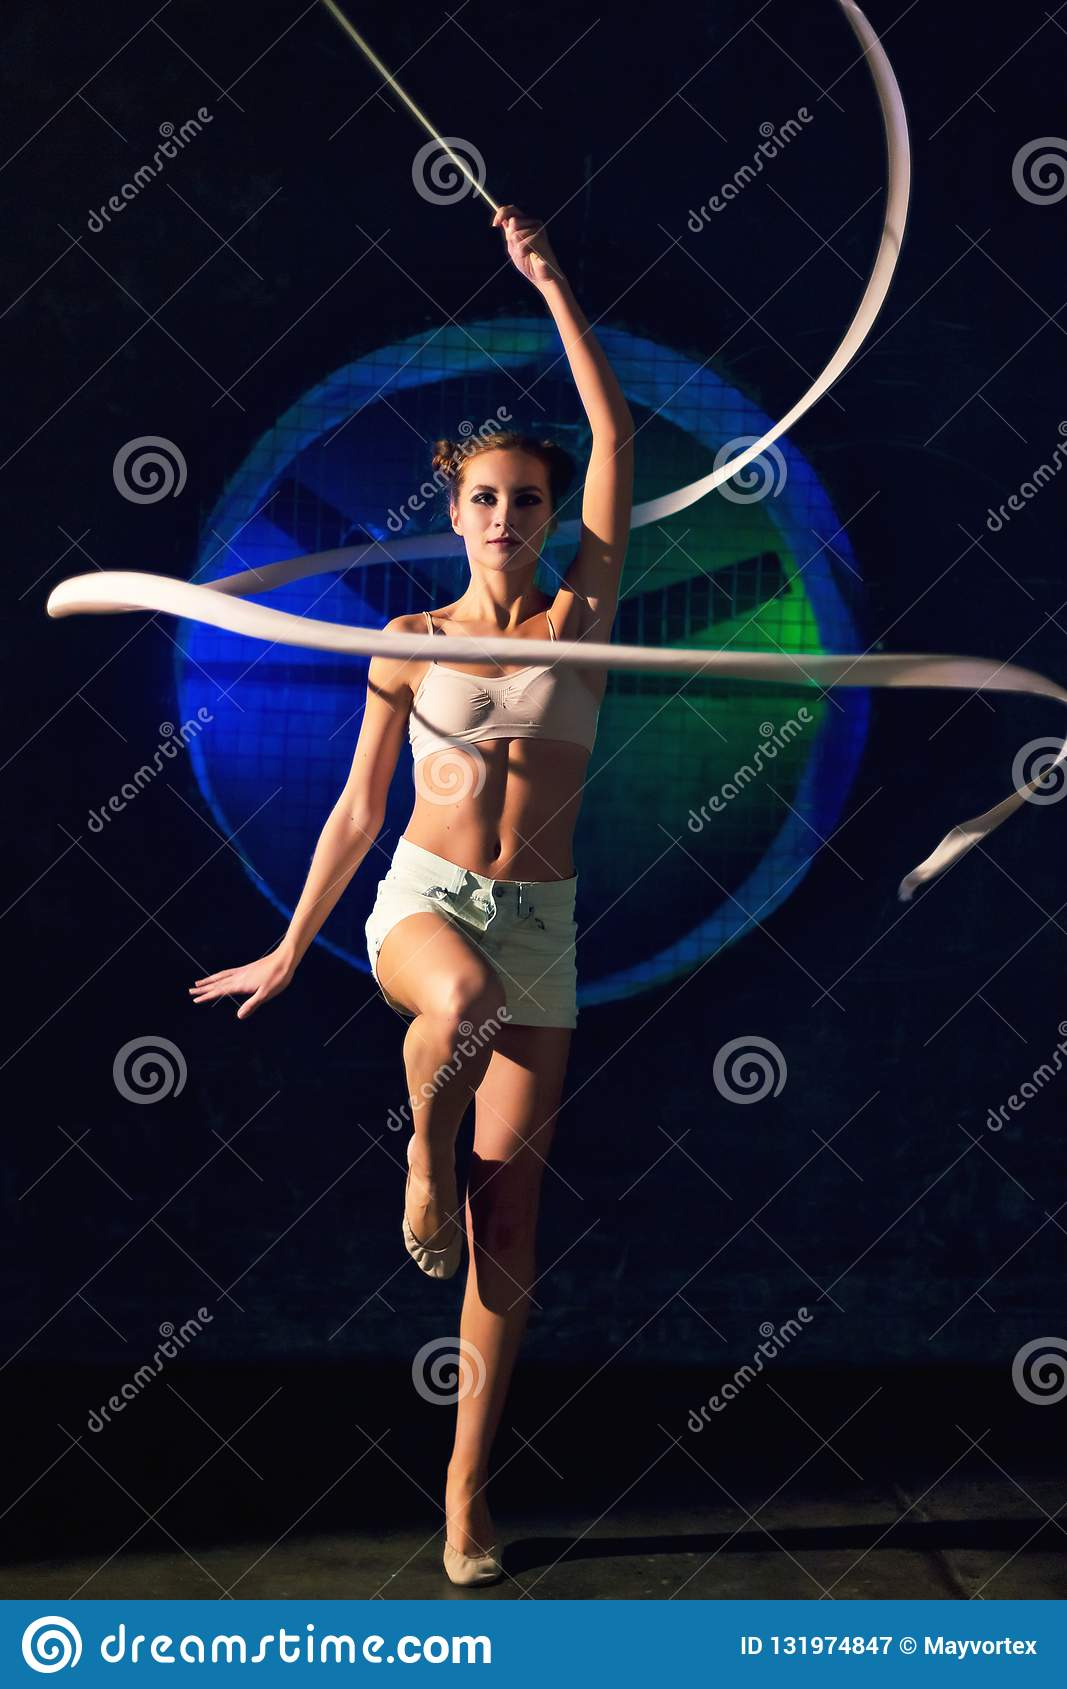 Cute young gymnast woman training with gymnastics tape on a dark background